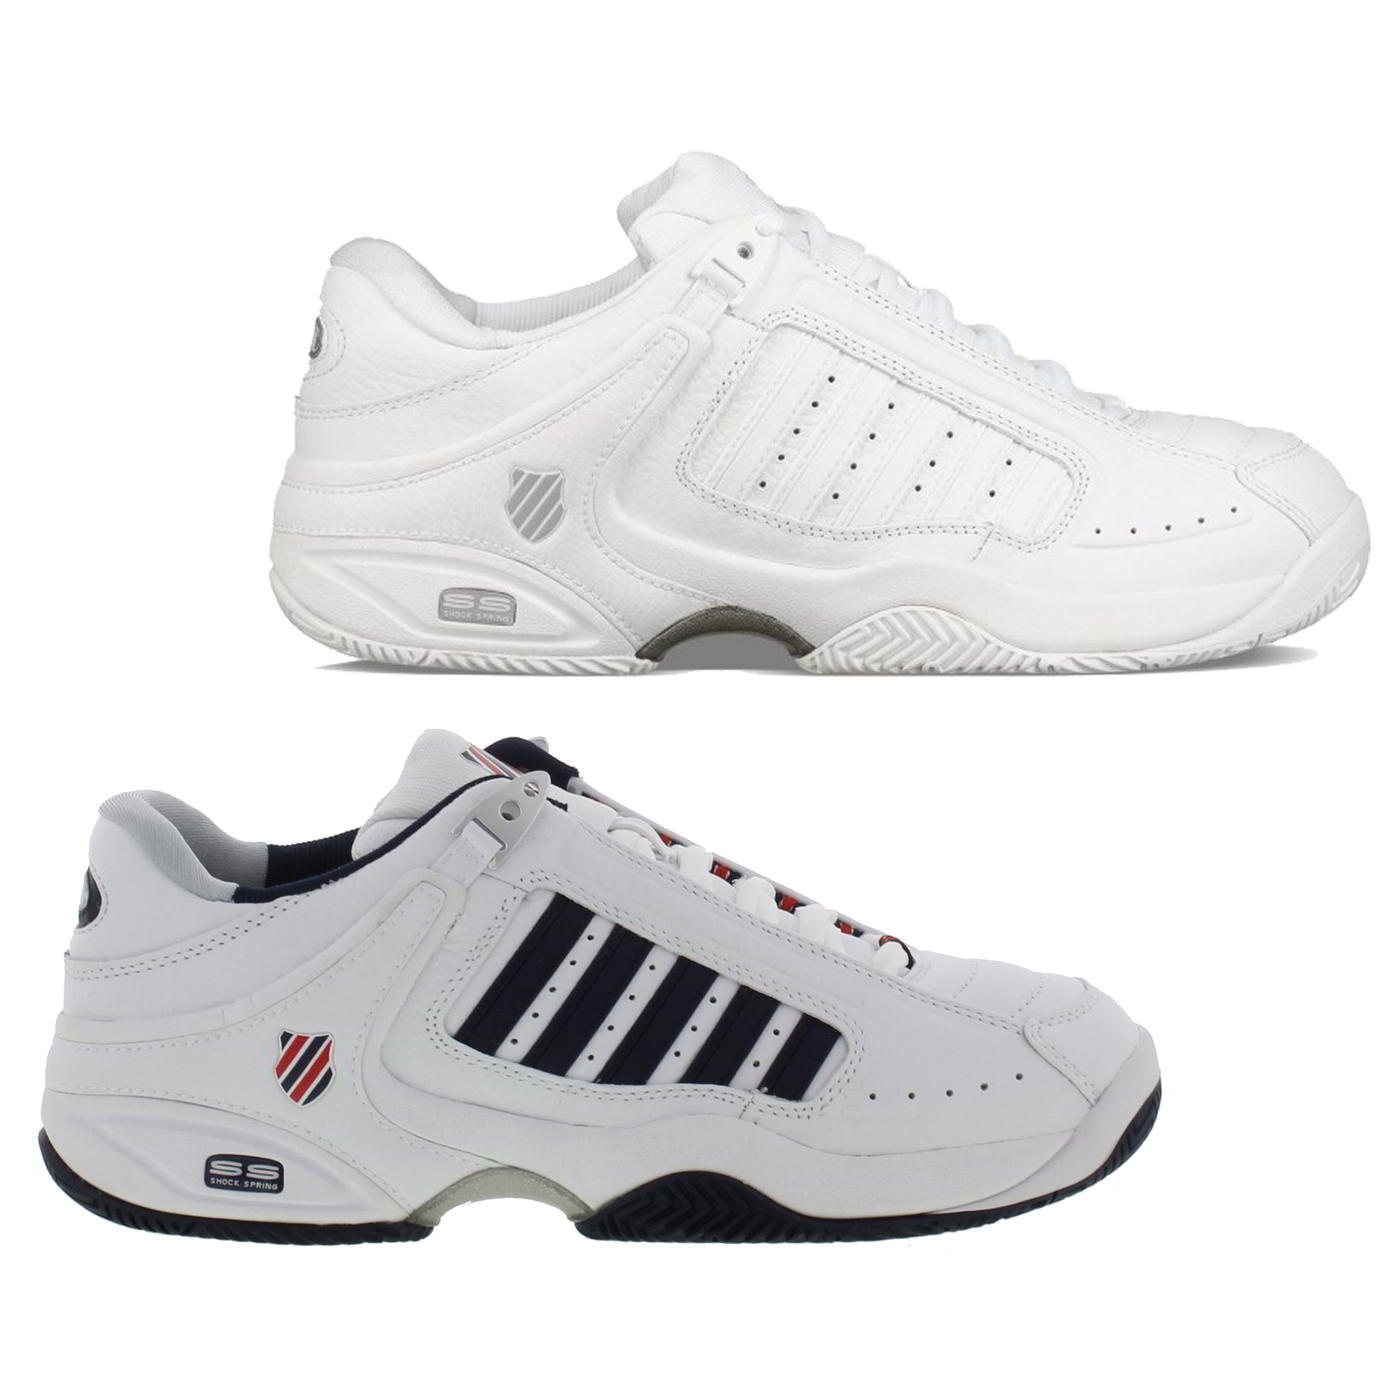 d3797cb00 Details about K Swiss Defier RS Mens Classic White Leather Tennis Trainers  Shoes Size UK 8-13